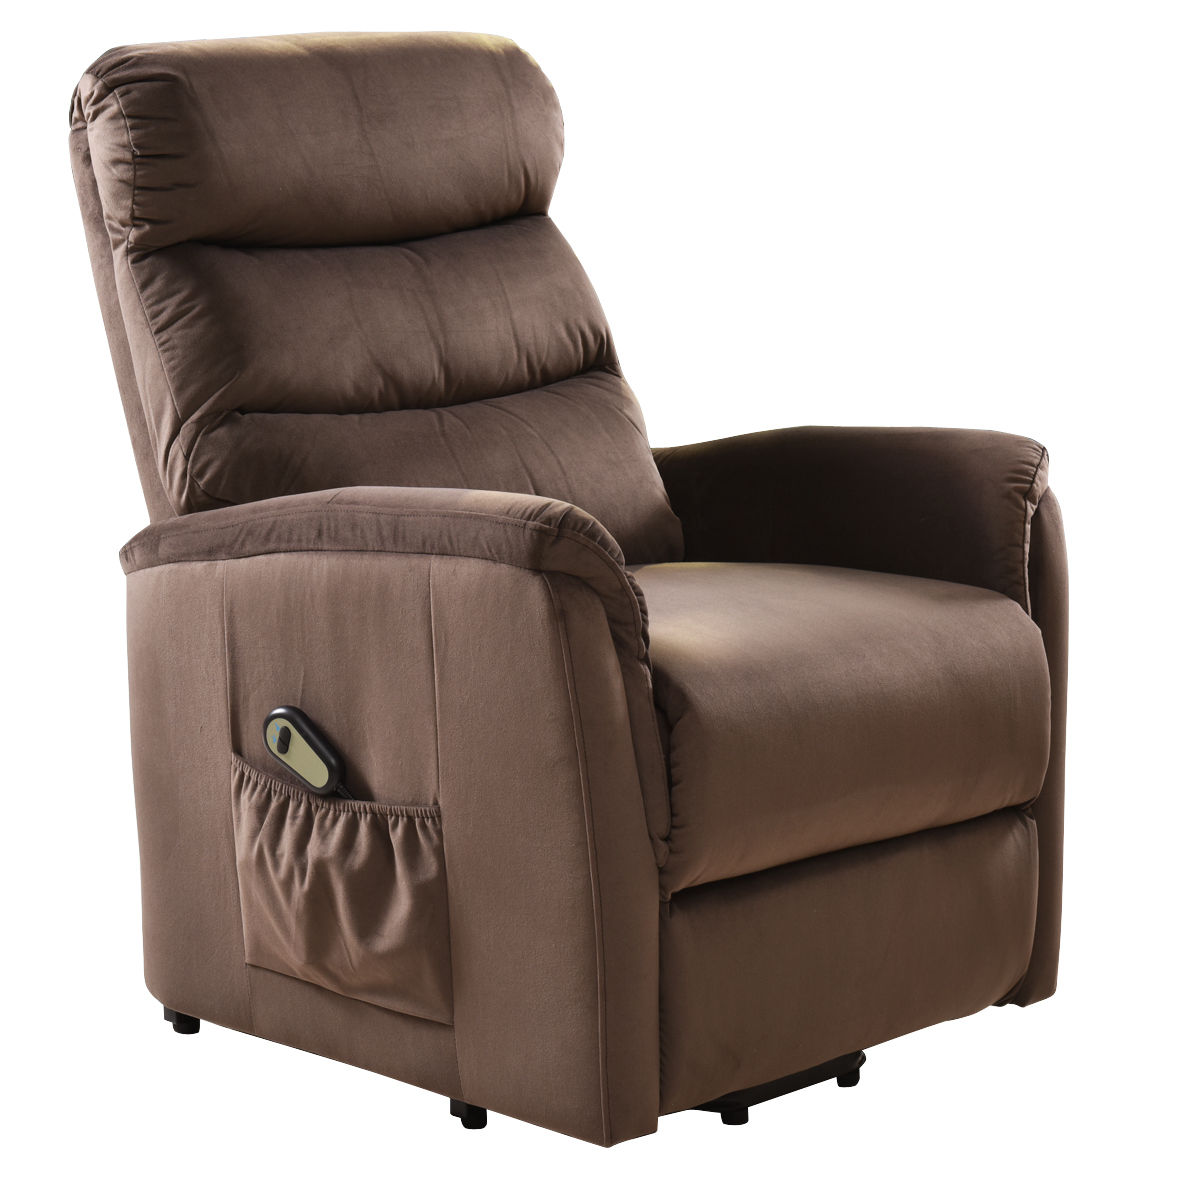 Costway Electric Lift Chair Recliner Reclining Chair Remote Living Room Furniture New  sc 1 st  Walmart & Costway Electric Lift Chair Recliner Reclining Chair Remote Living ... islam-shia.org